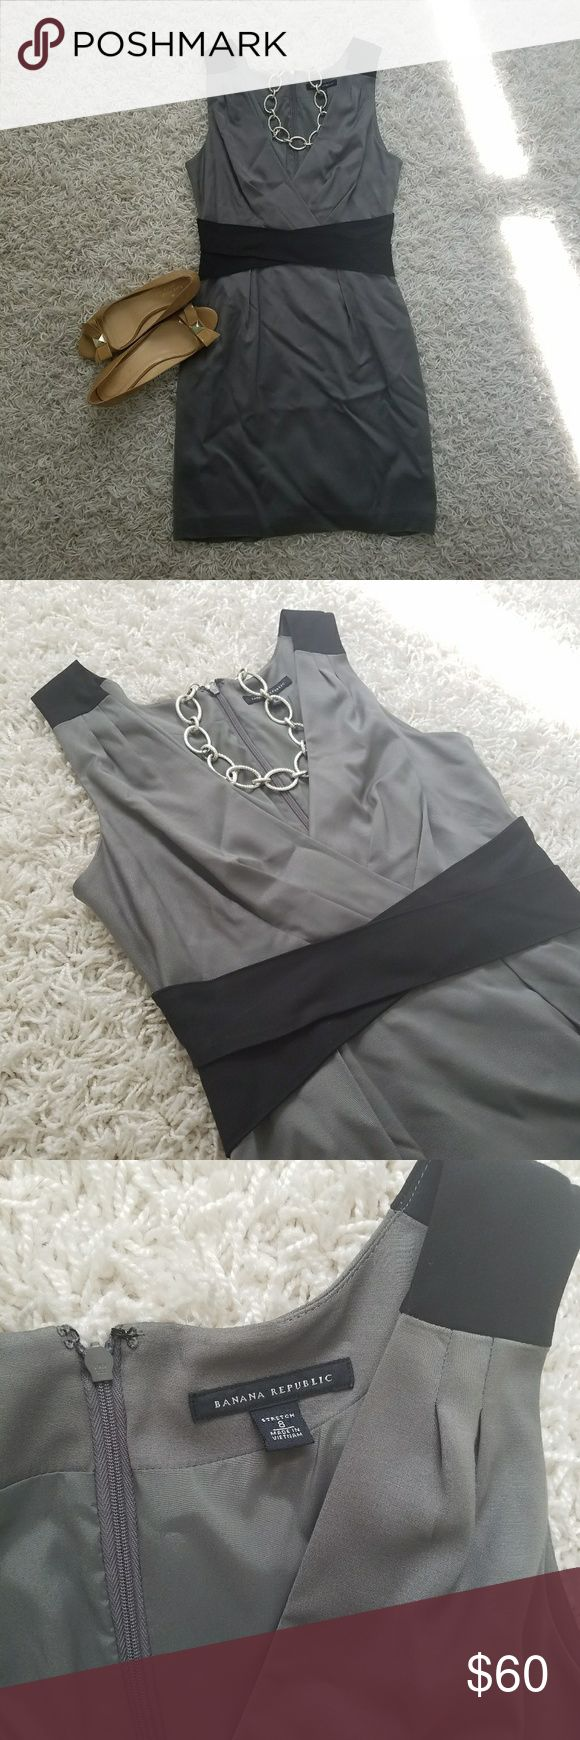 Banana Republic Dress Stunning sheath dress from Banana Republic 💗 gray with black accents is extrmemely slimming and gives the illusion of a narrower waist while the V neck elongates your neck 😍 perfect for the offoce with a blazer or for date night with stilletos 👠 Banana Republic Dresses